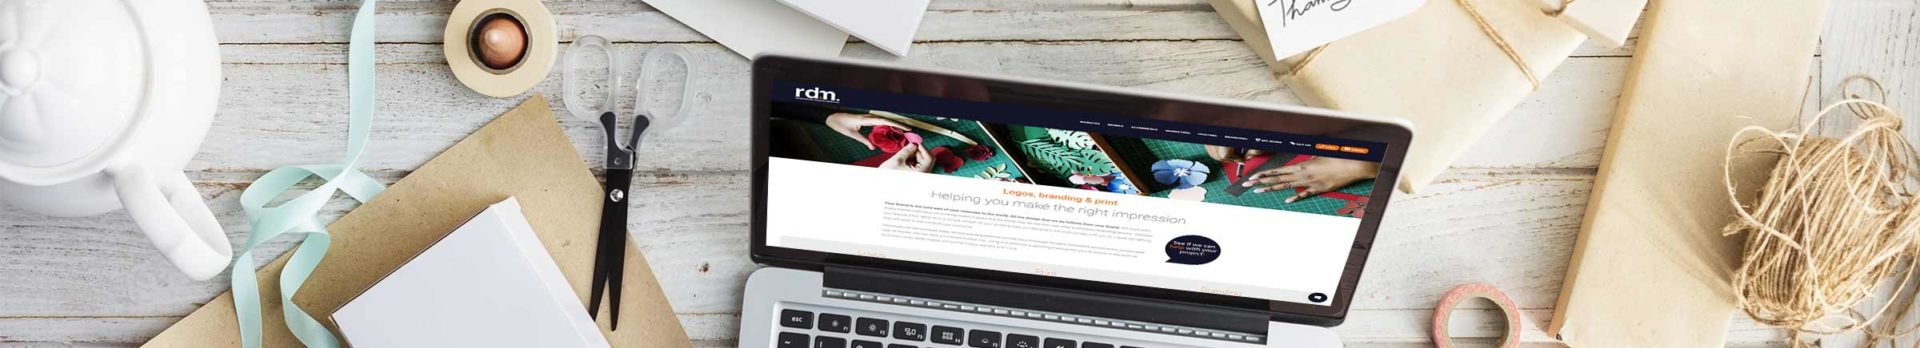 Robinson Digital & Media | Web Design